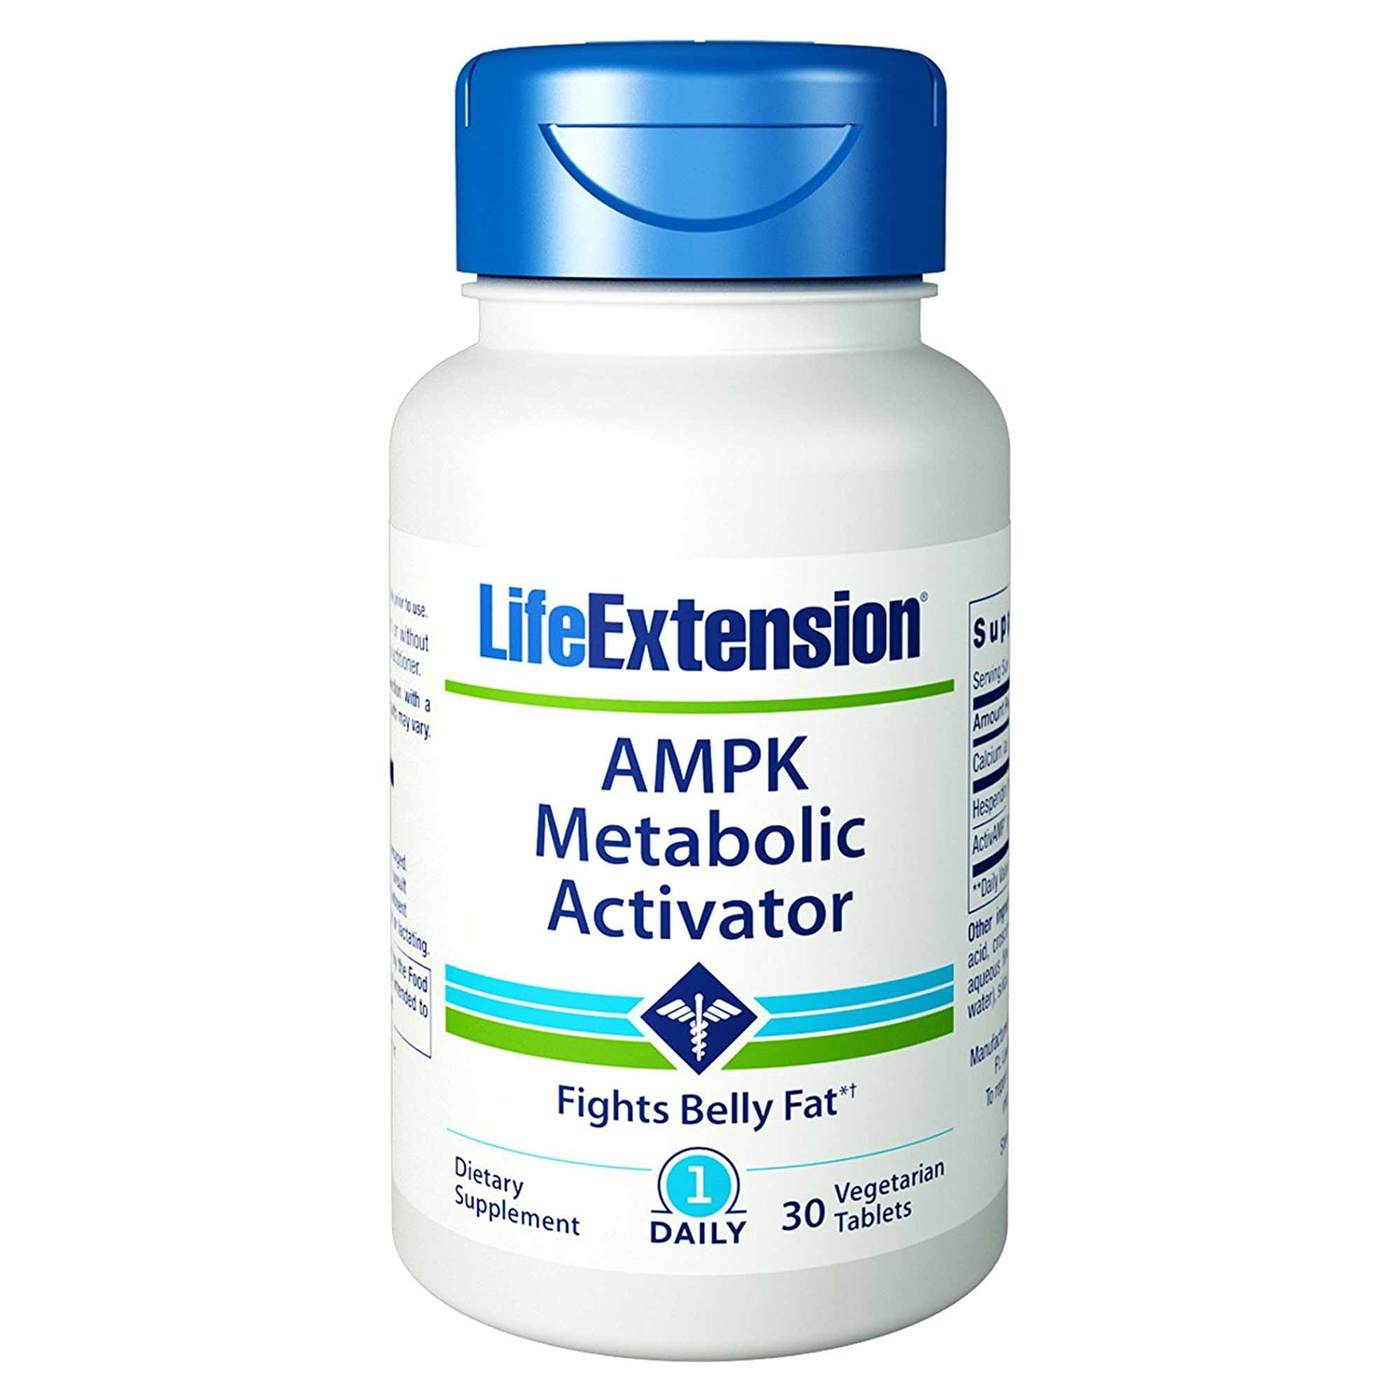 life extension The latest research on health, wellness, nutrition, dietary supplements and healthy aging.